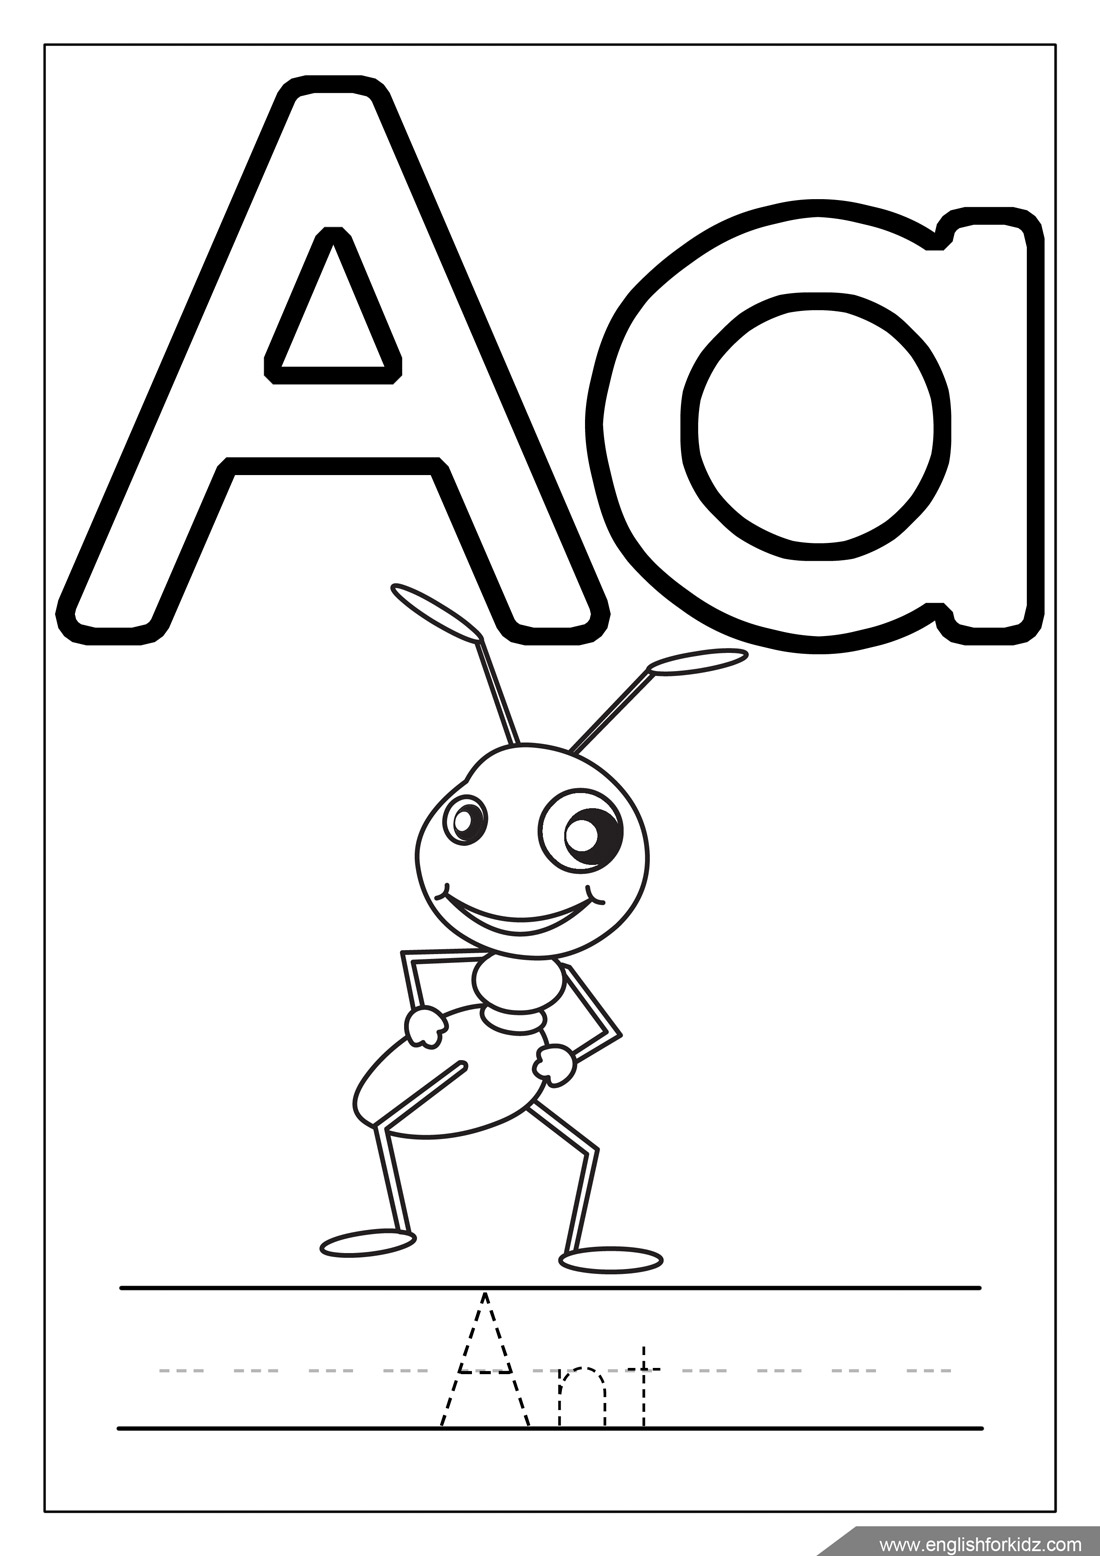 colouring pictures of alphabets awesome alphabet coloring sheets yescoloring holidays colouring alphabets of pictures